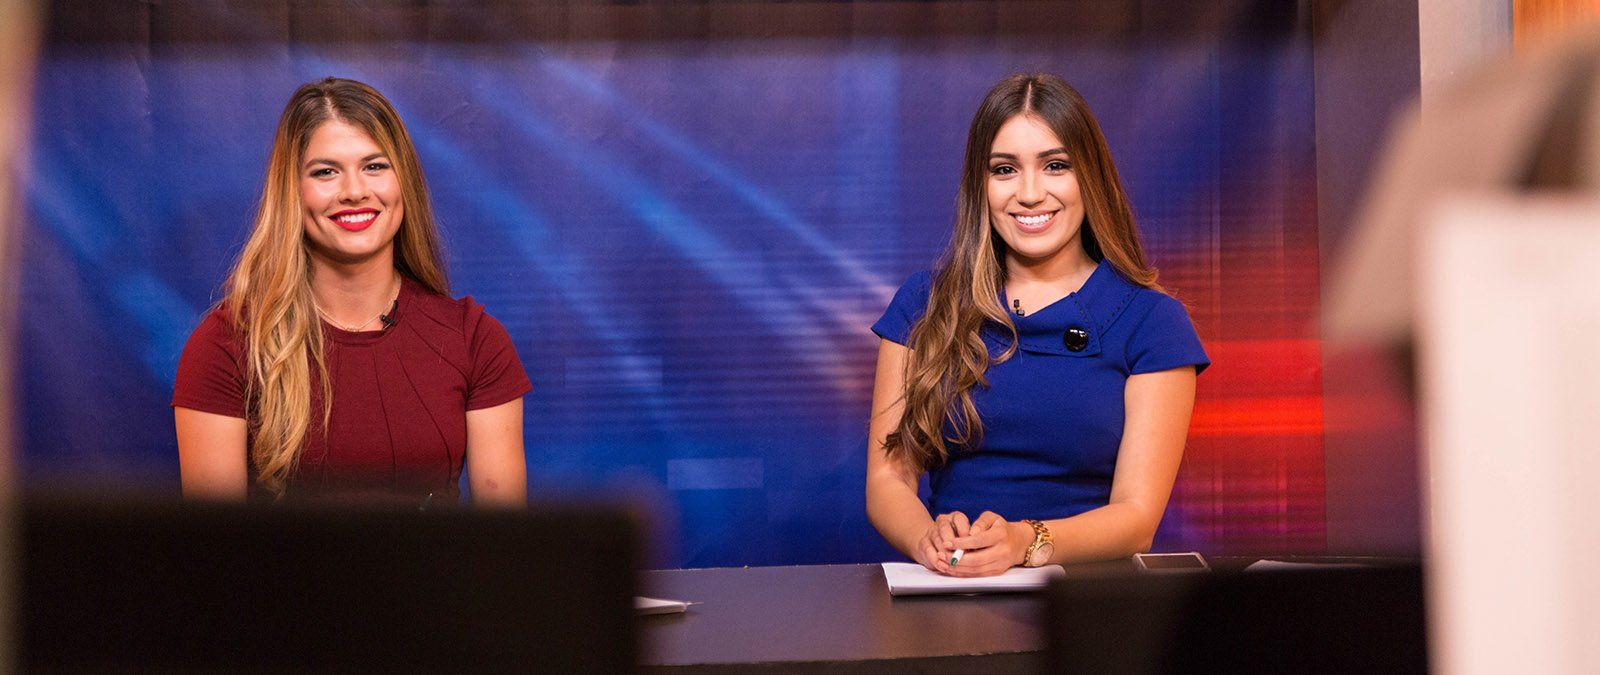 Two female students tv hosts smile as the camera begins recording.